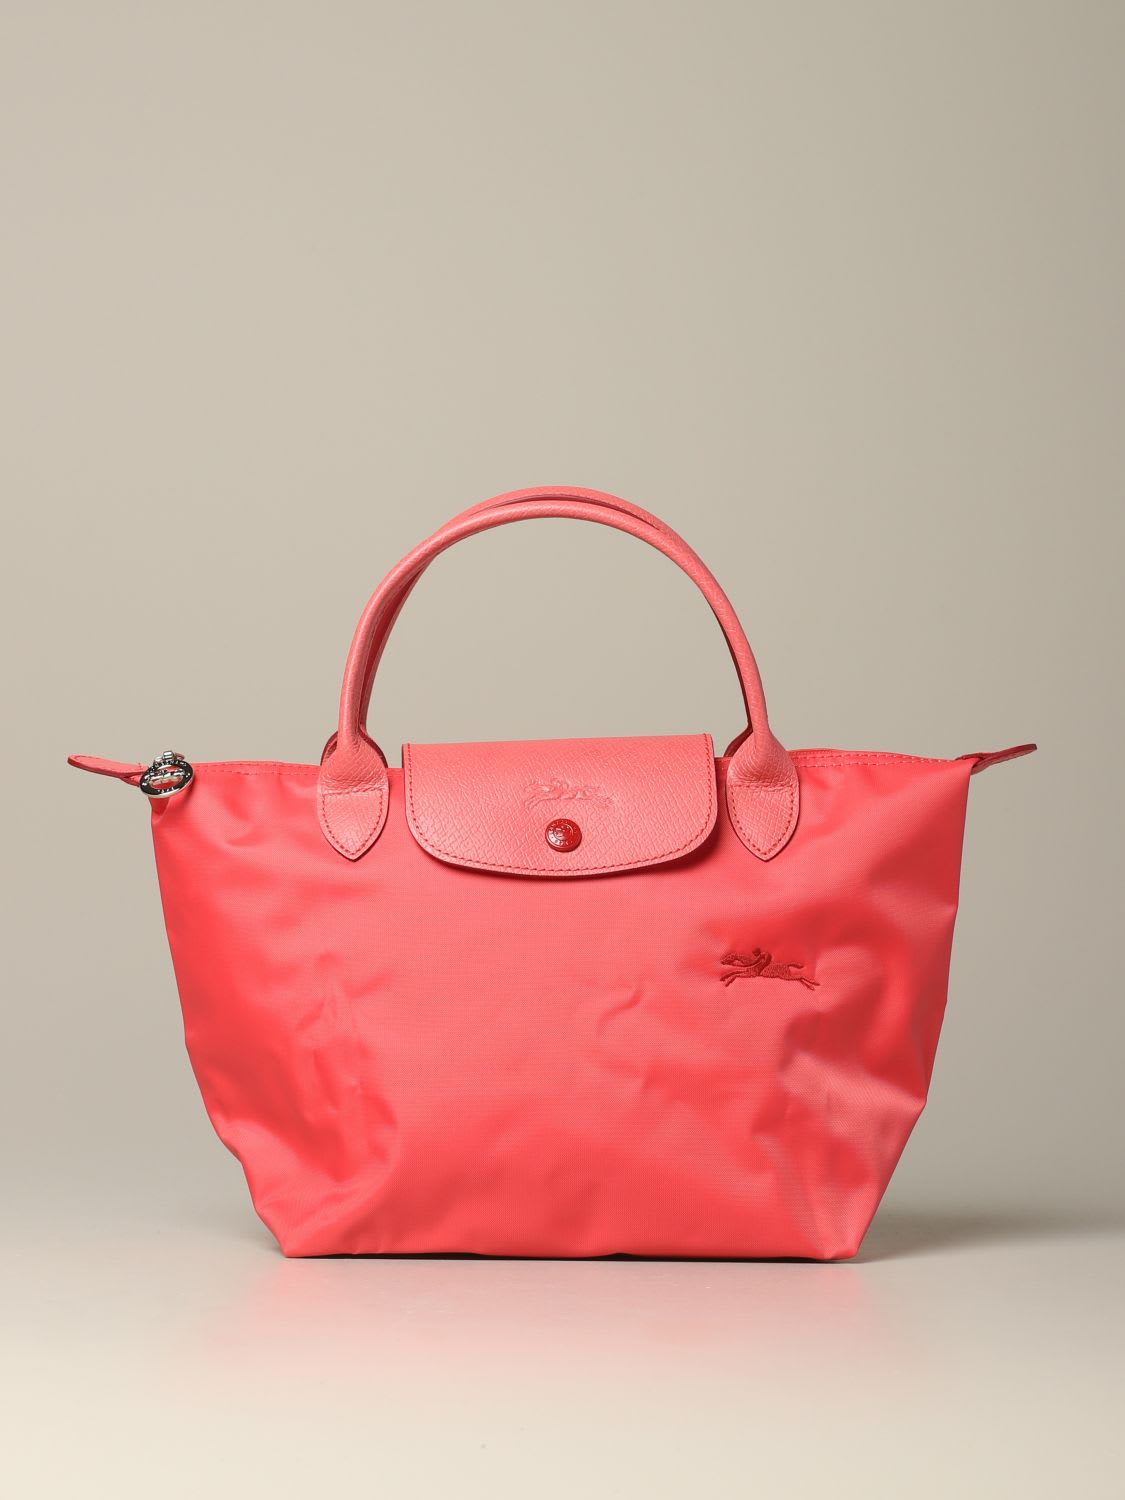 Longchamp Bag In Nylon With Logo In Geranium